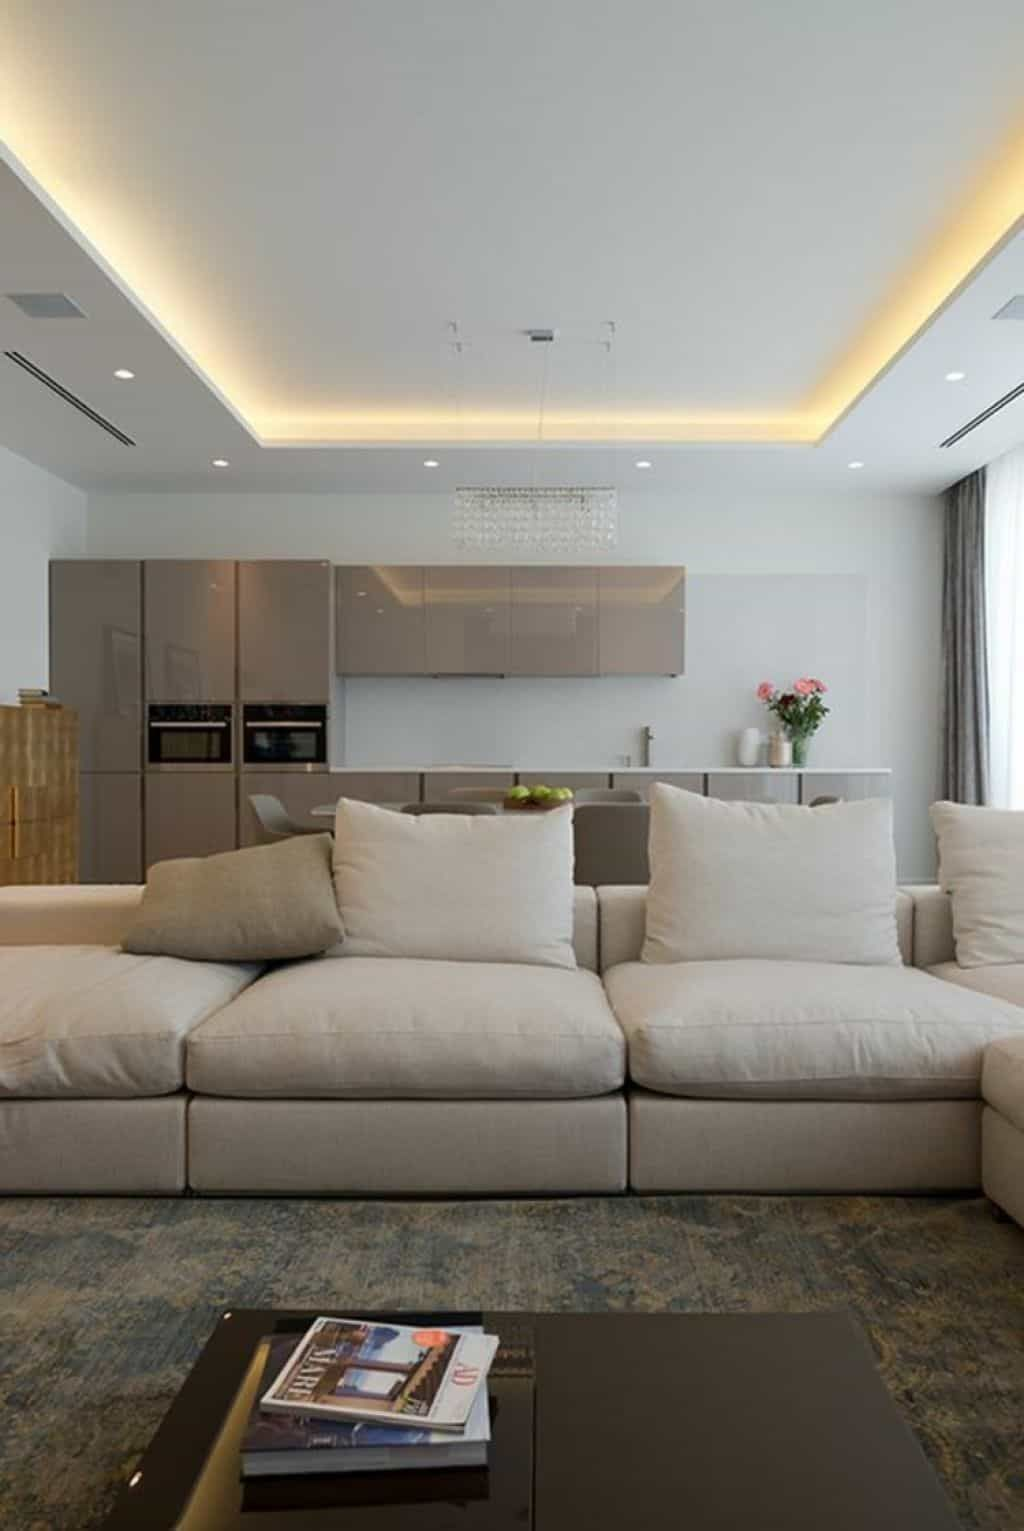 Installing Rope Lighting In Tray Ceiling House Ceiling Design Recessed Lighting Living Room Living Room Ceiling